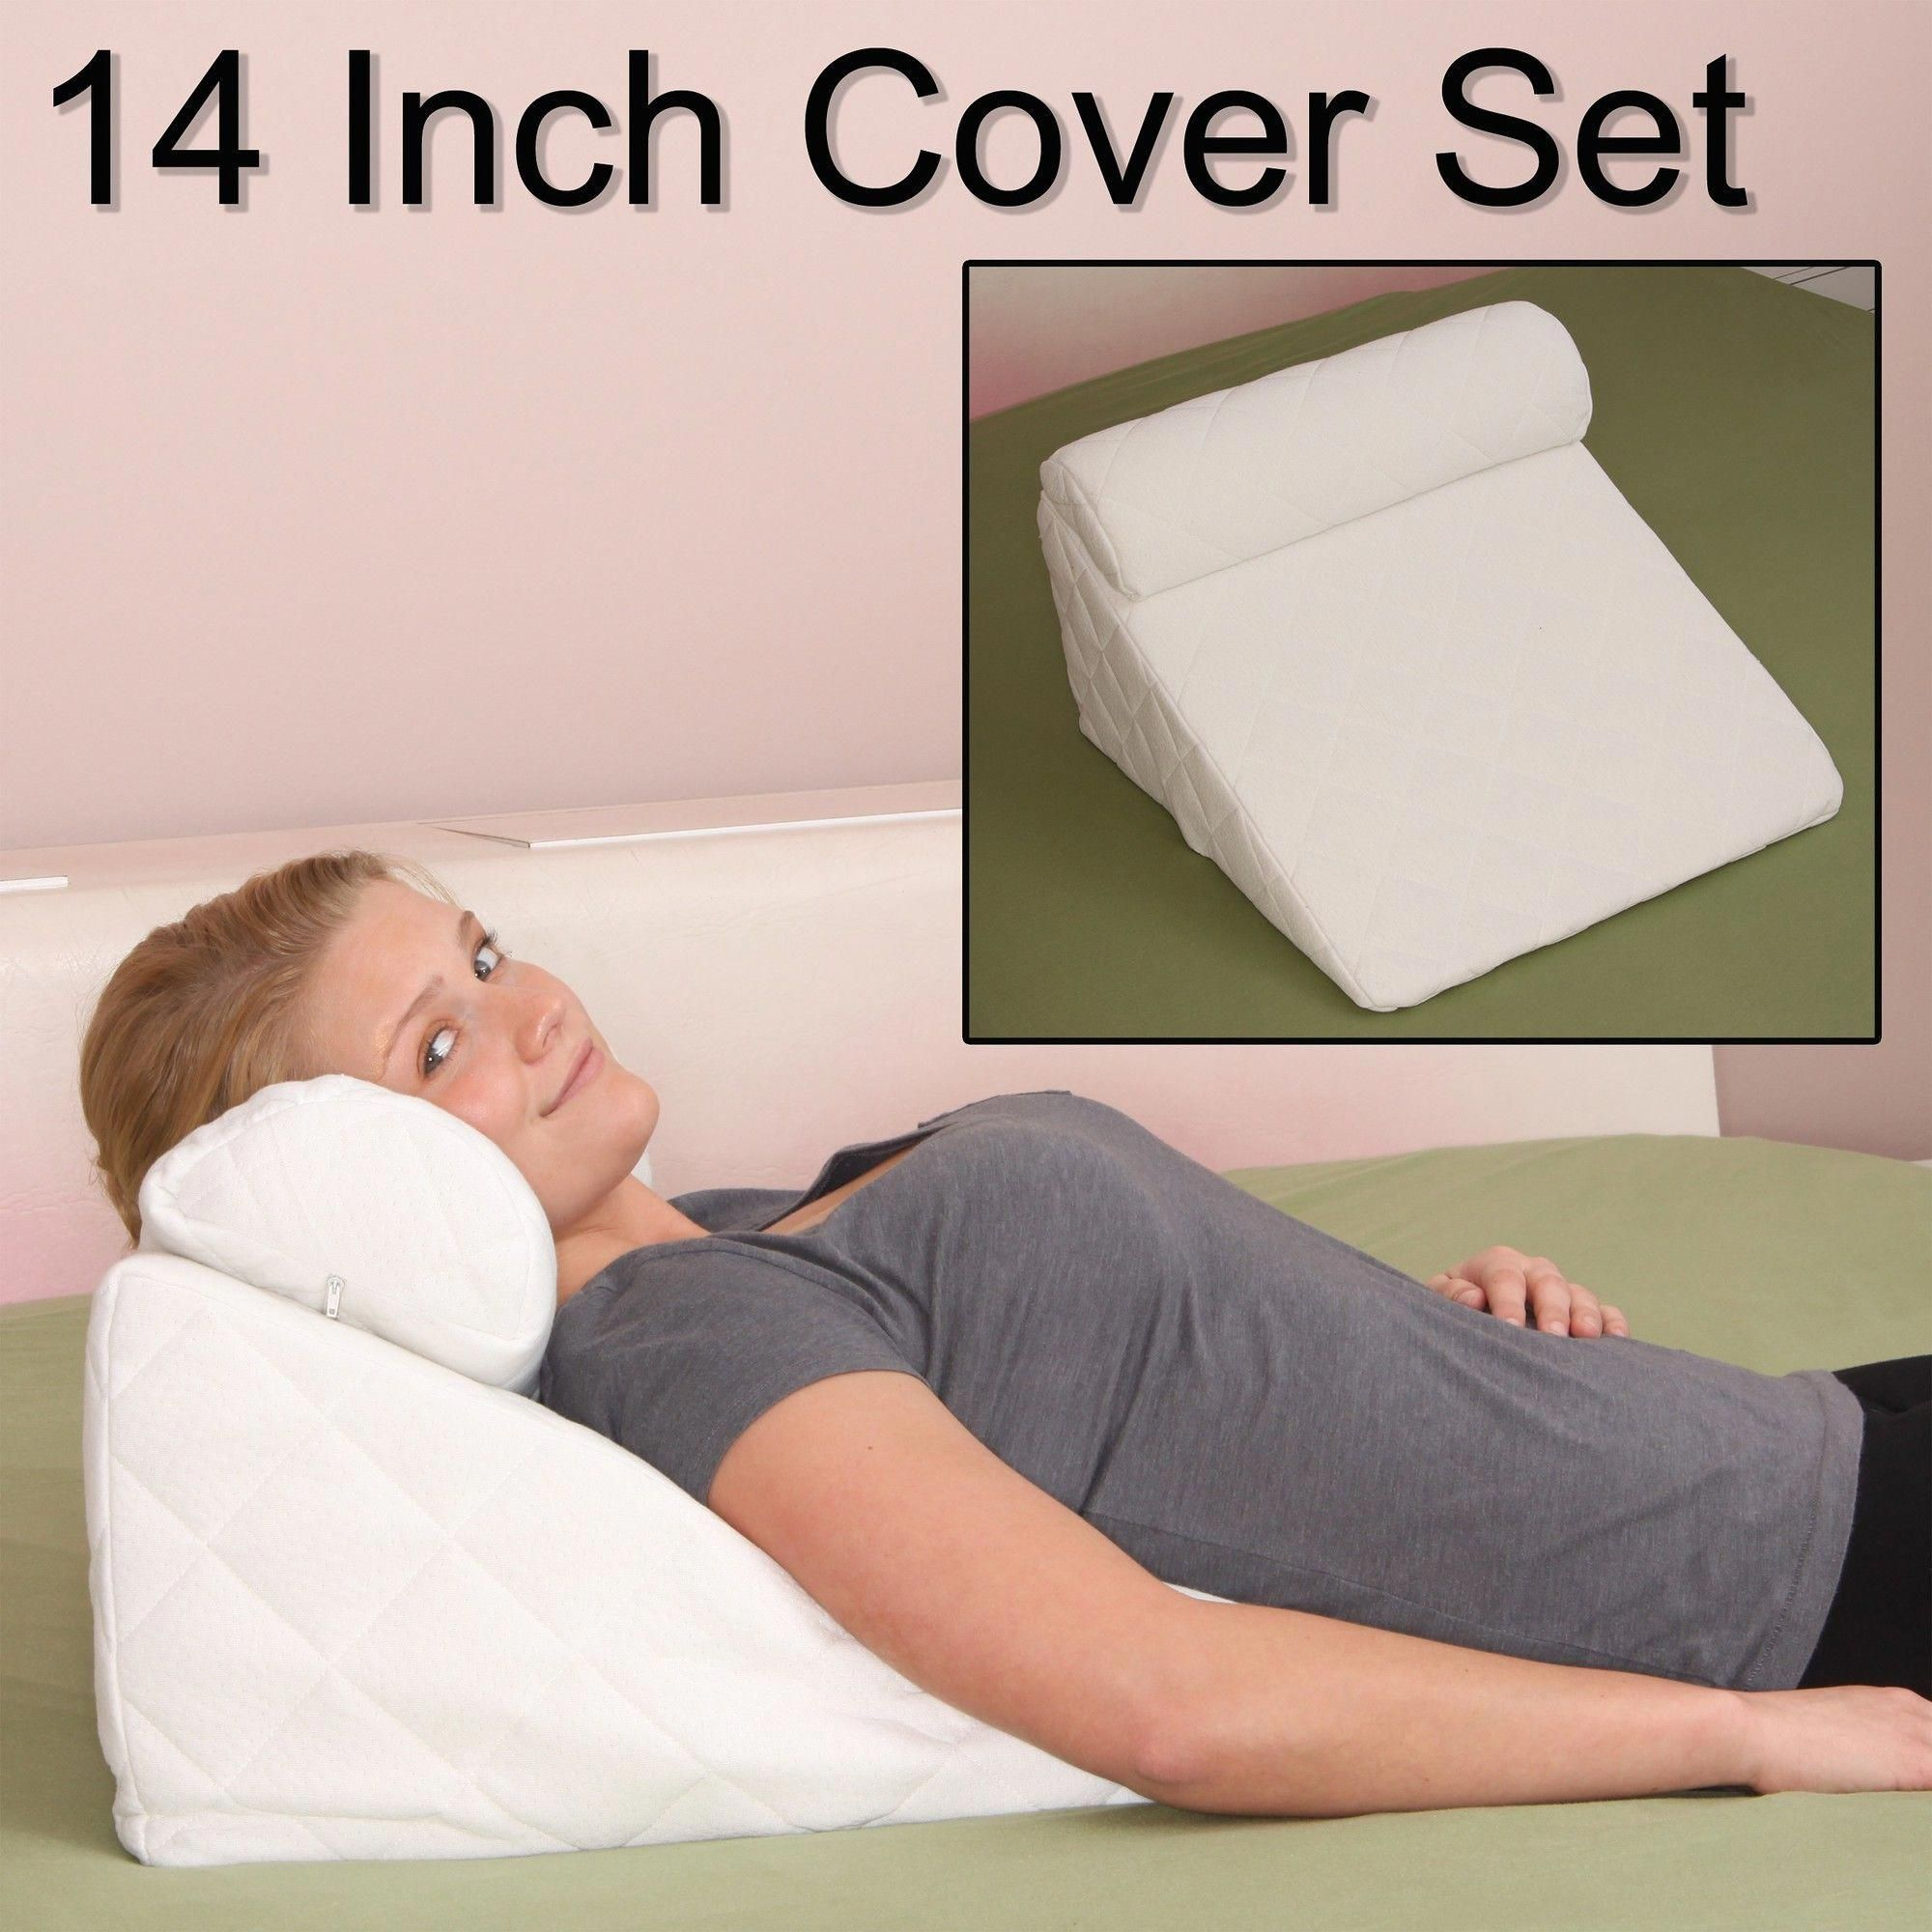 Acid Reflux Pillow 383 Thread Count Soft Padded Cover For Acid Reflux Pillow